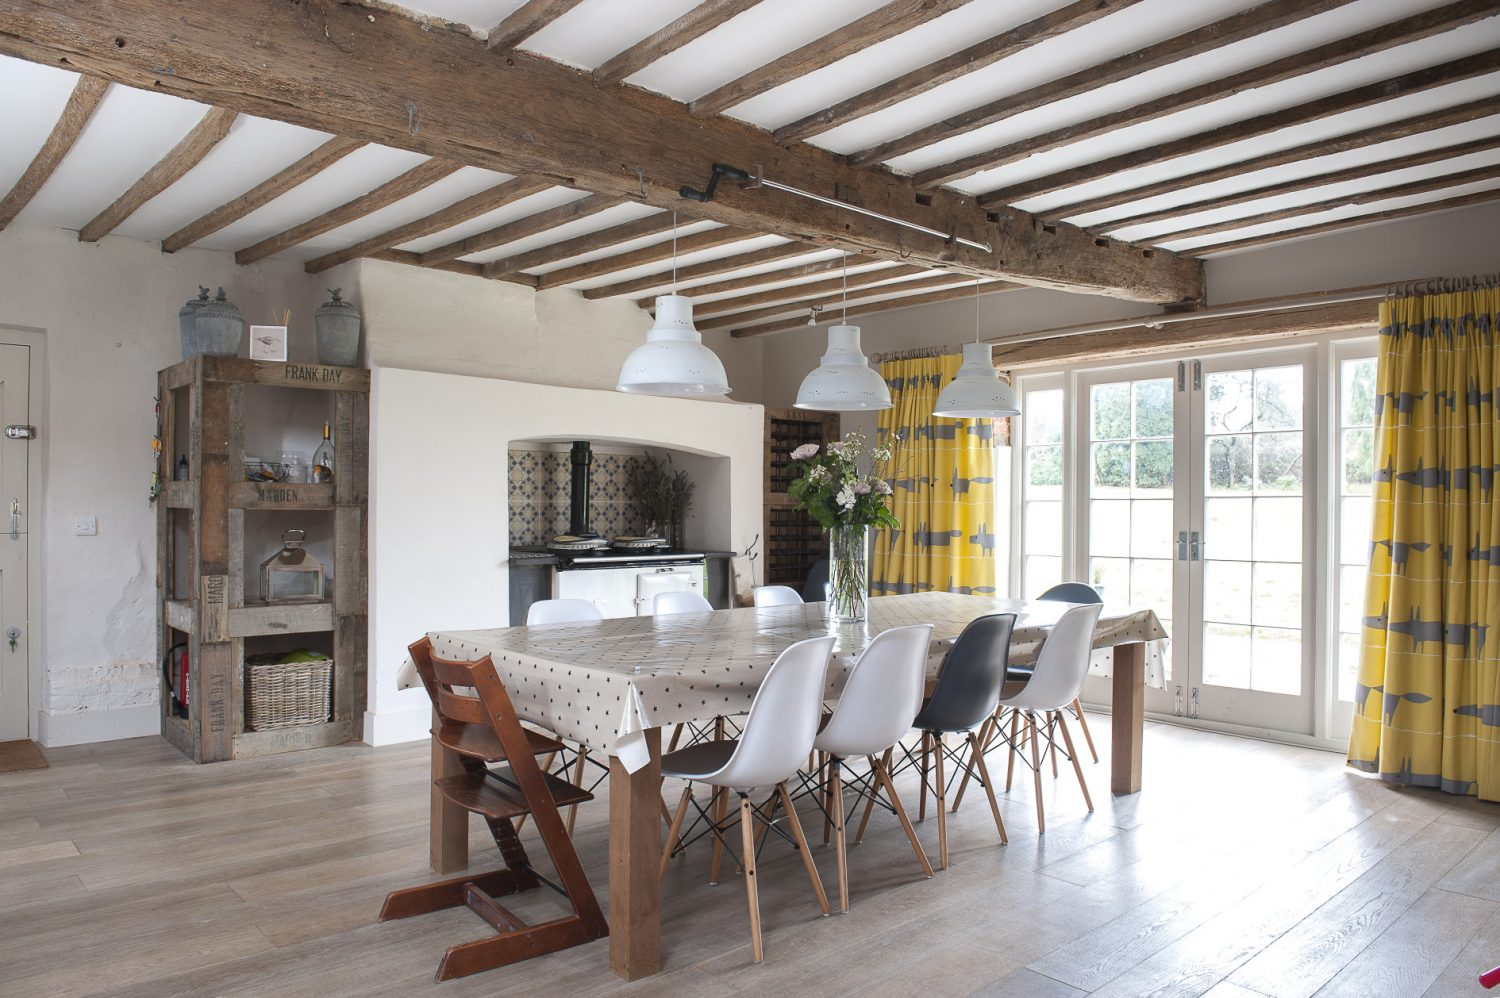 The ten-seater kitchen-cum-dining table was designed by Perrine and made by their carpenter Jason Tanner. Alongside is the Aga, with geometric tiles behind, and a shelving unit made from reclaimed local fruit bins